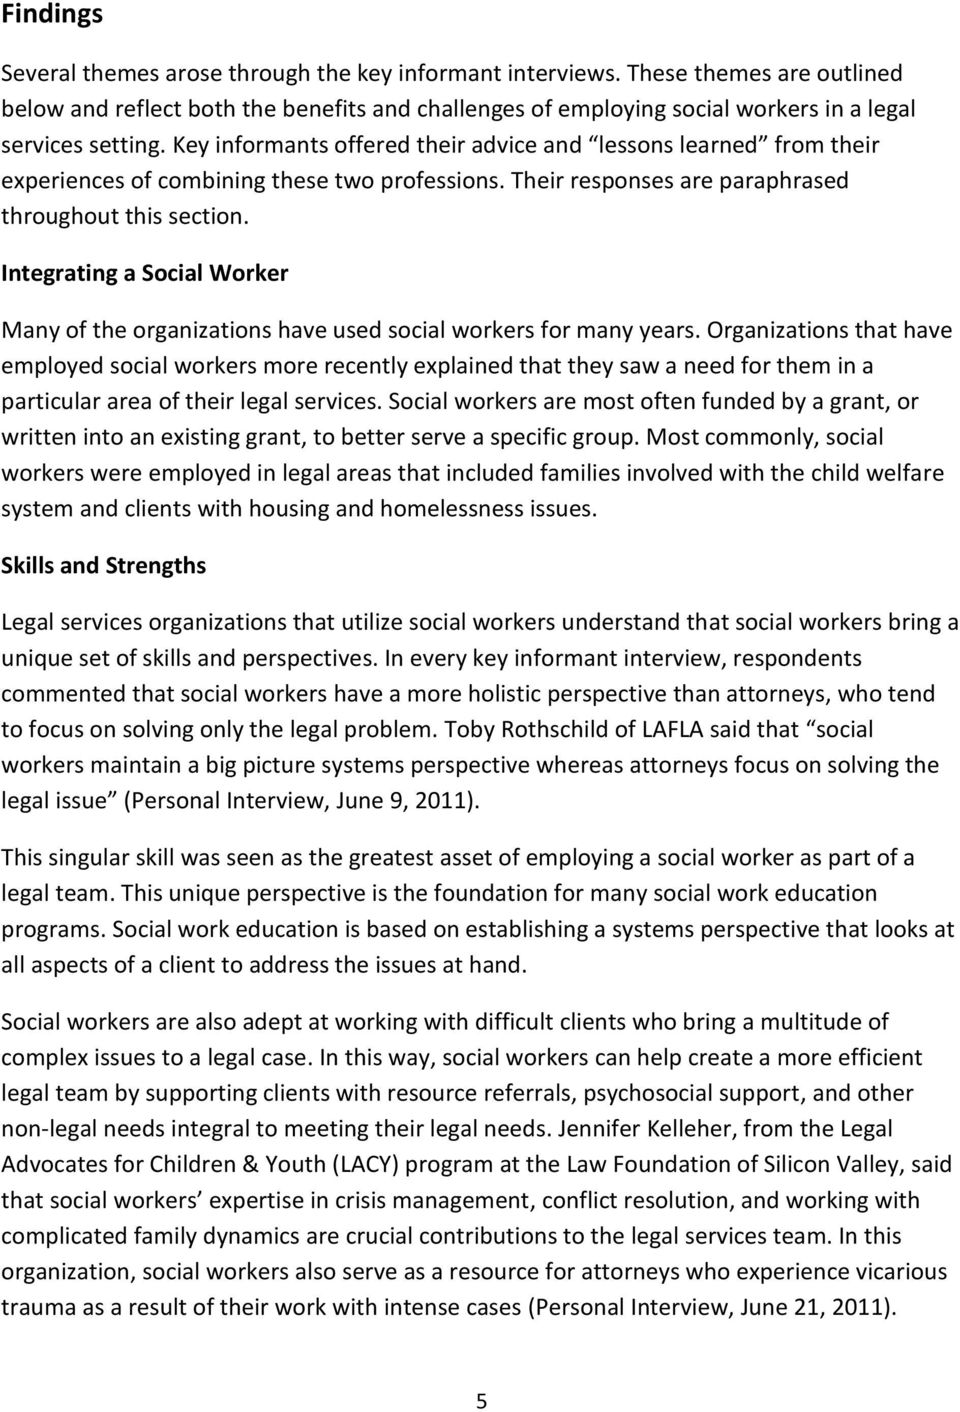 Social Work and Legal Services Integrating Disciplines